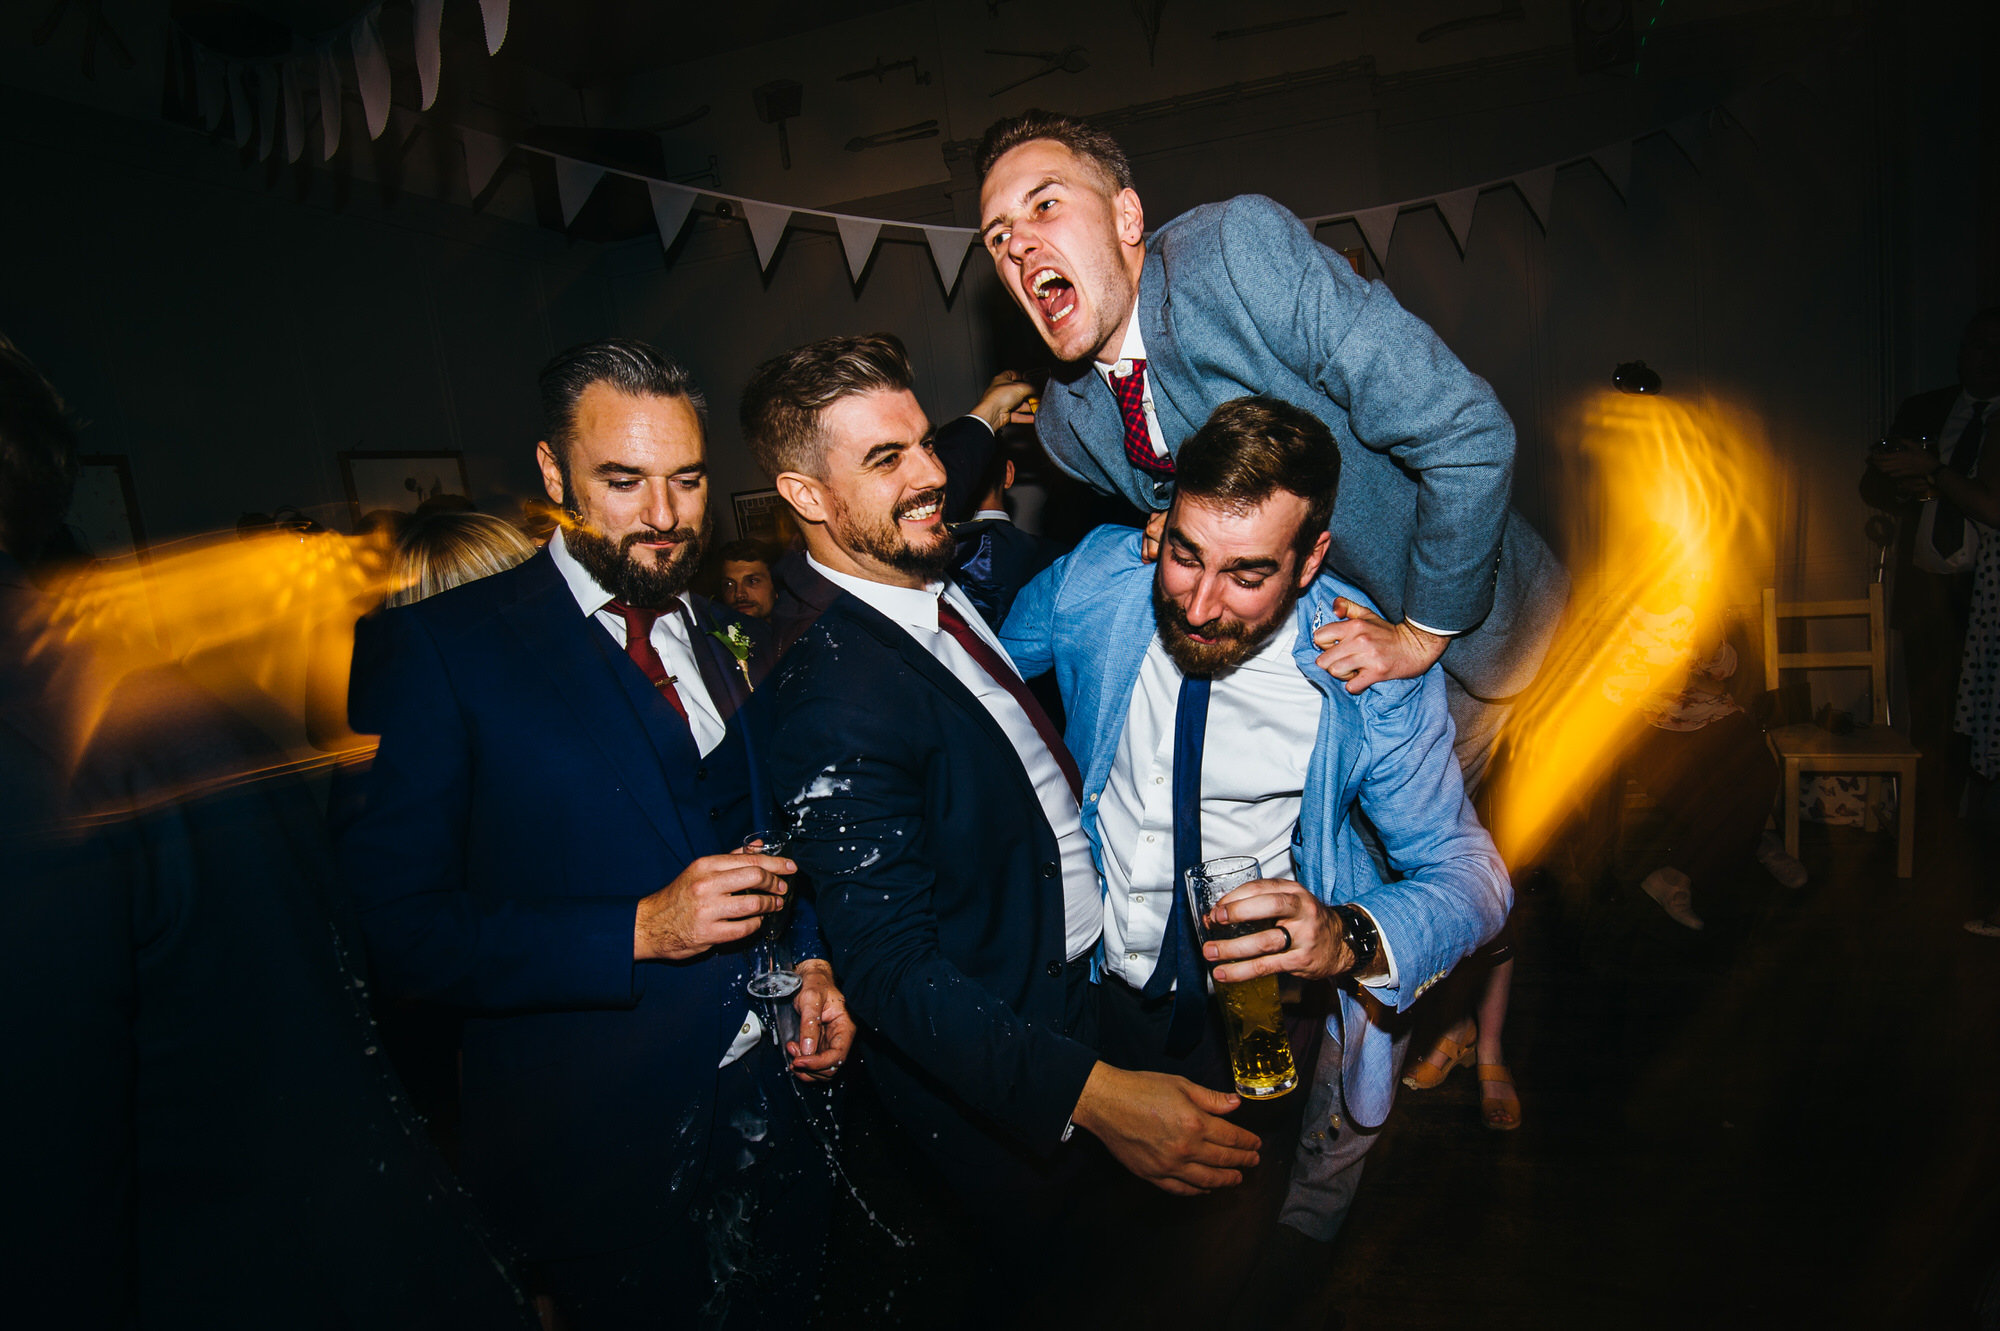 Fun pub wedding in London